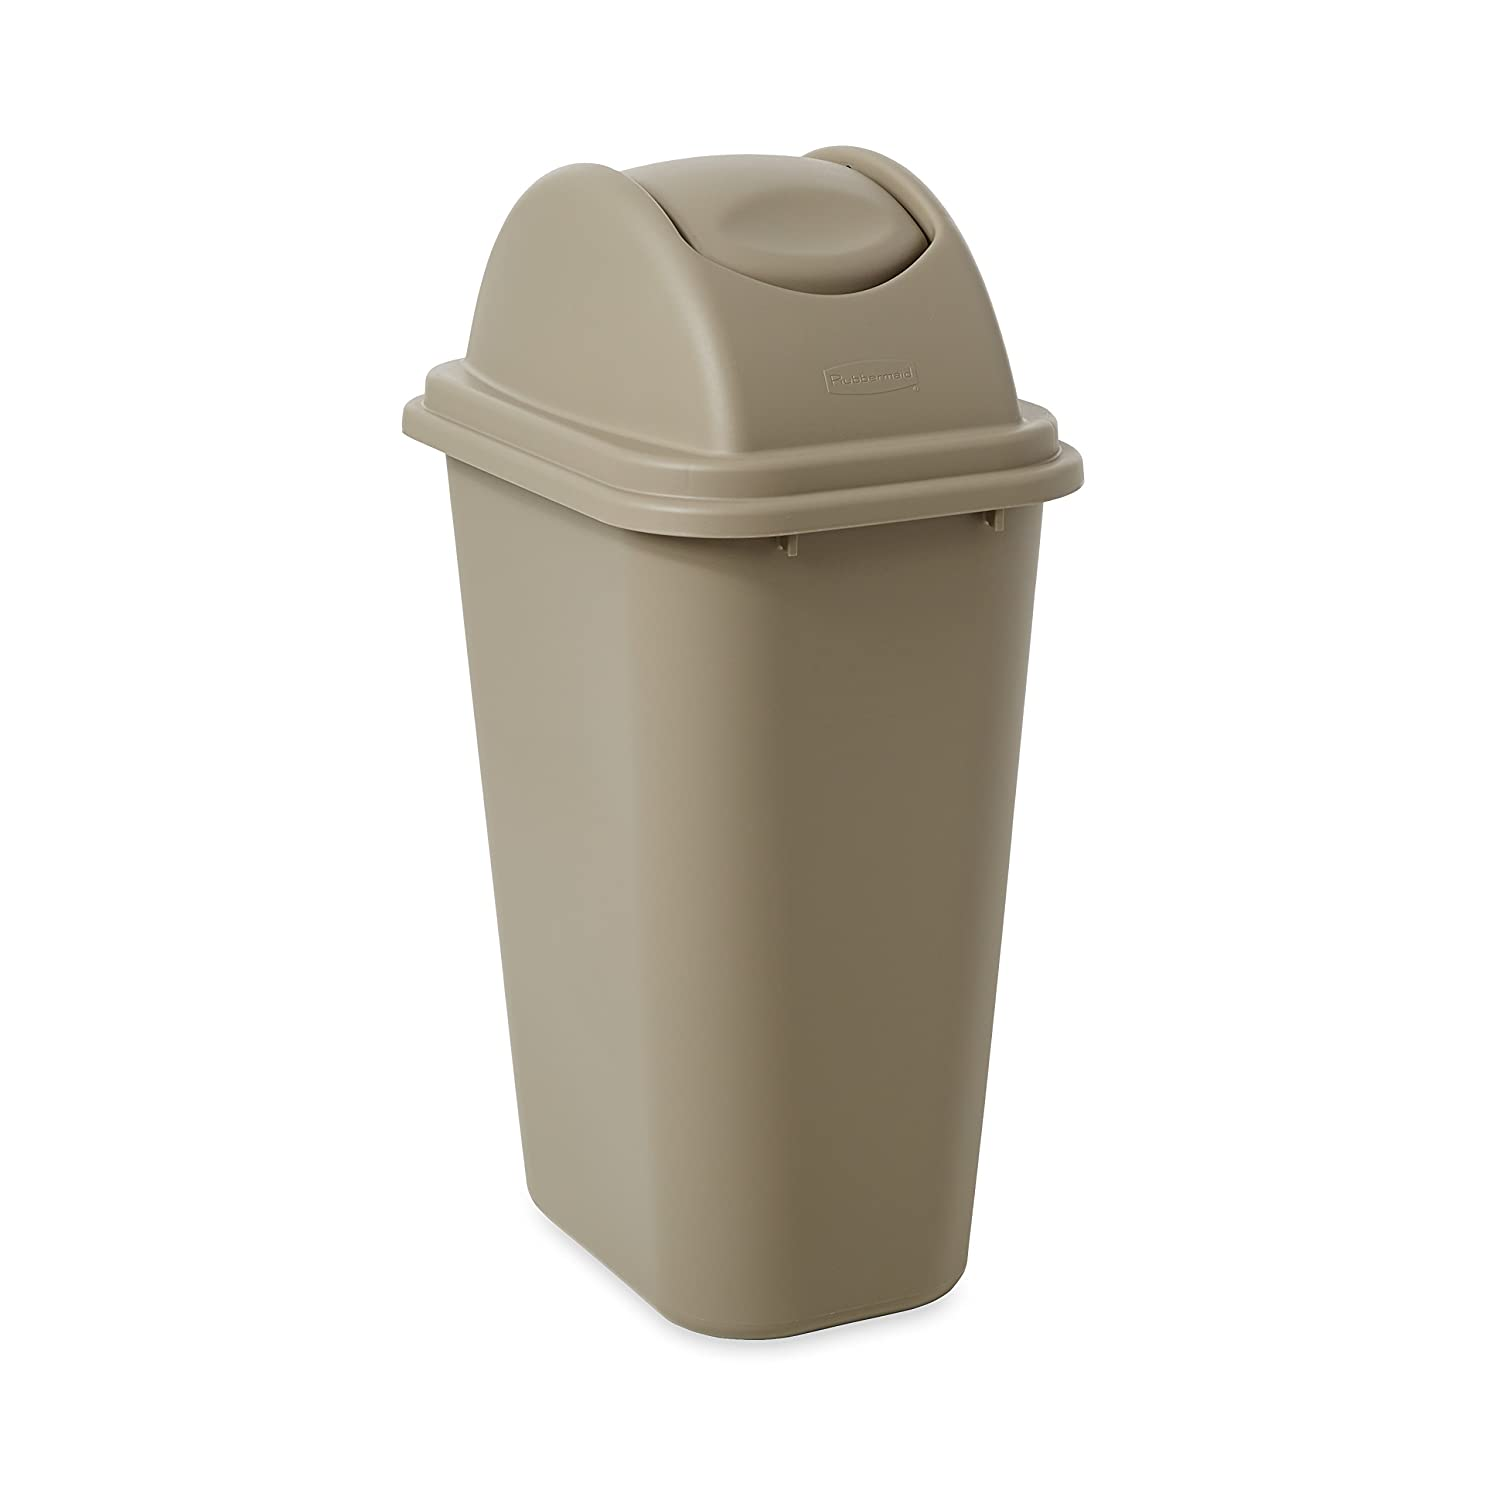 Rubbermaid Kitchen Trash Cans #24: Featured Deals In Office Waste Bins